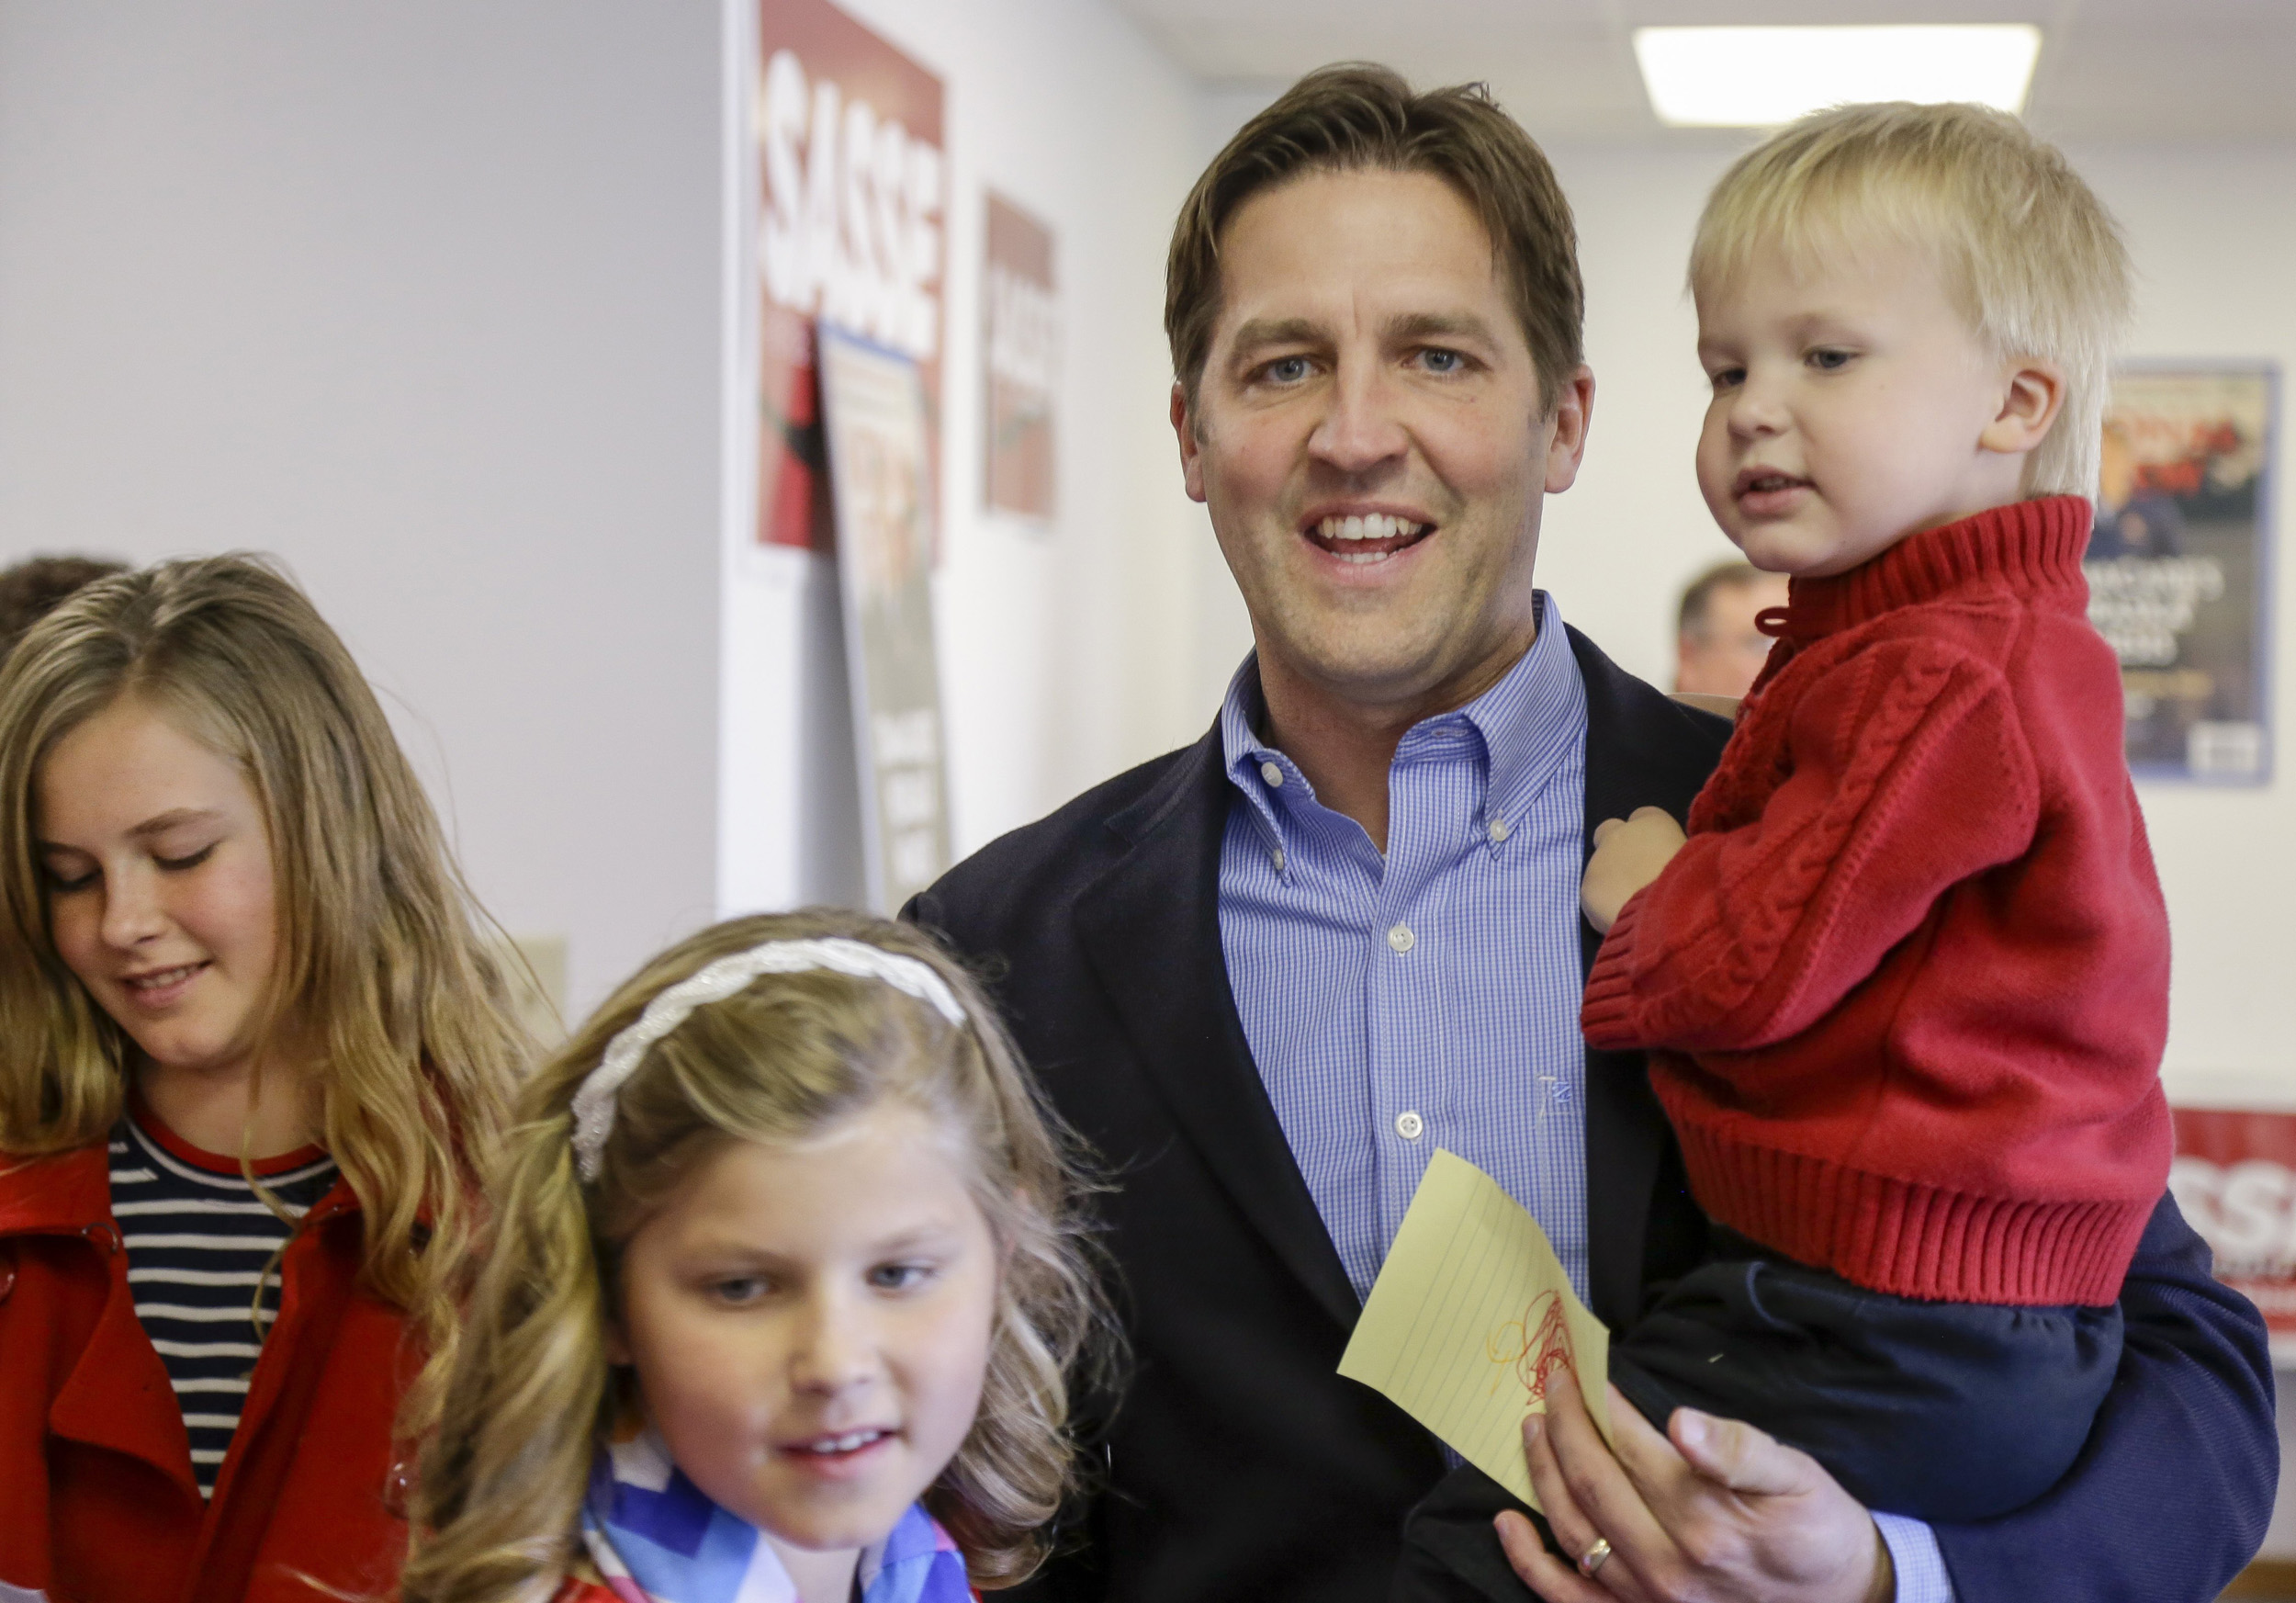 <b>Ben Sasse</b>                                   The President of Midland University in Fremont, Neb., since 2010, Sasse won the Senate seat vacated by Sen. Mike Johanns.